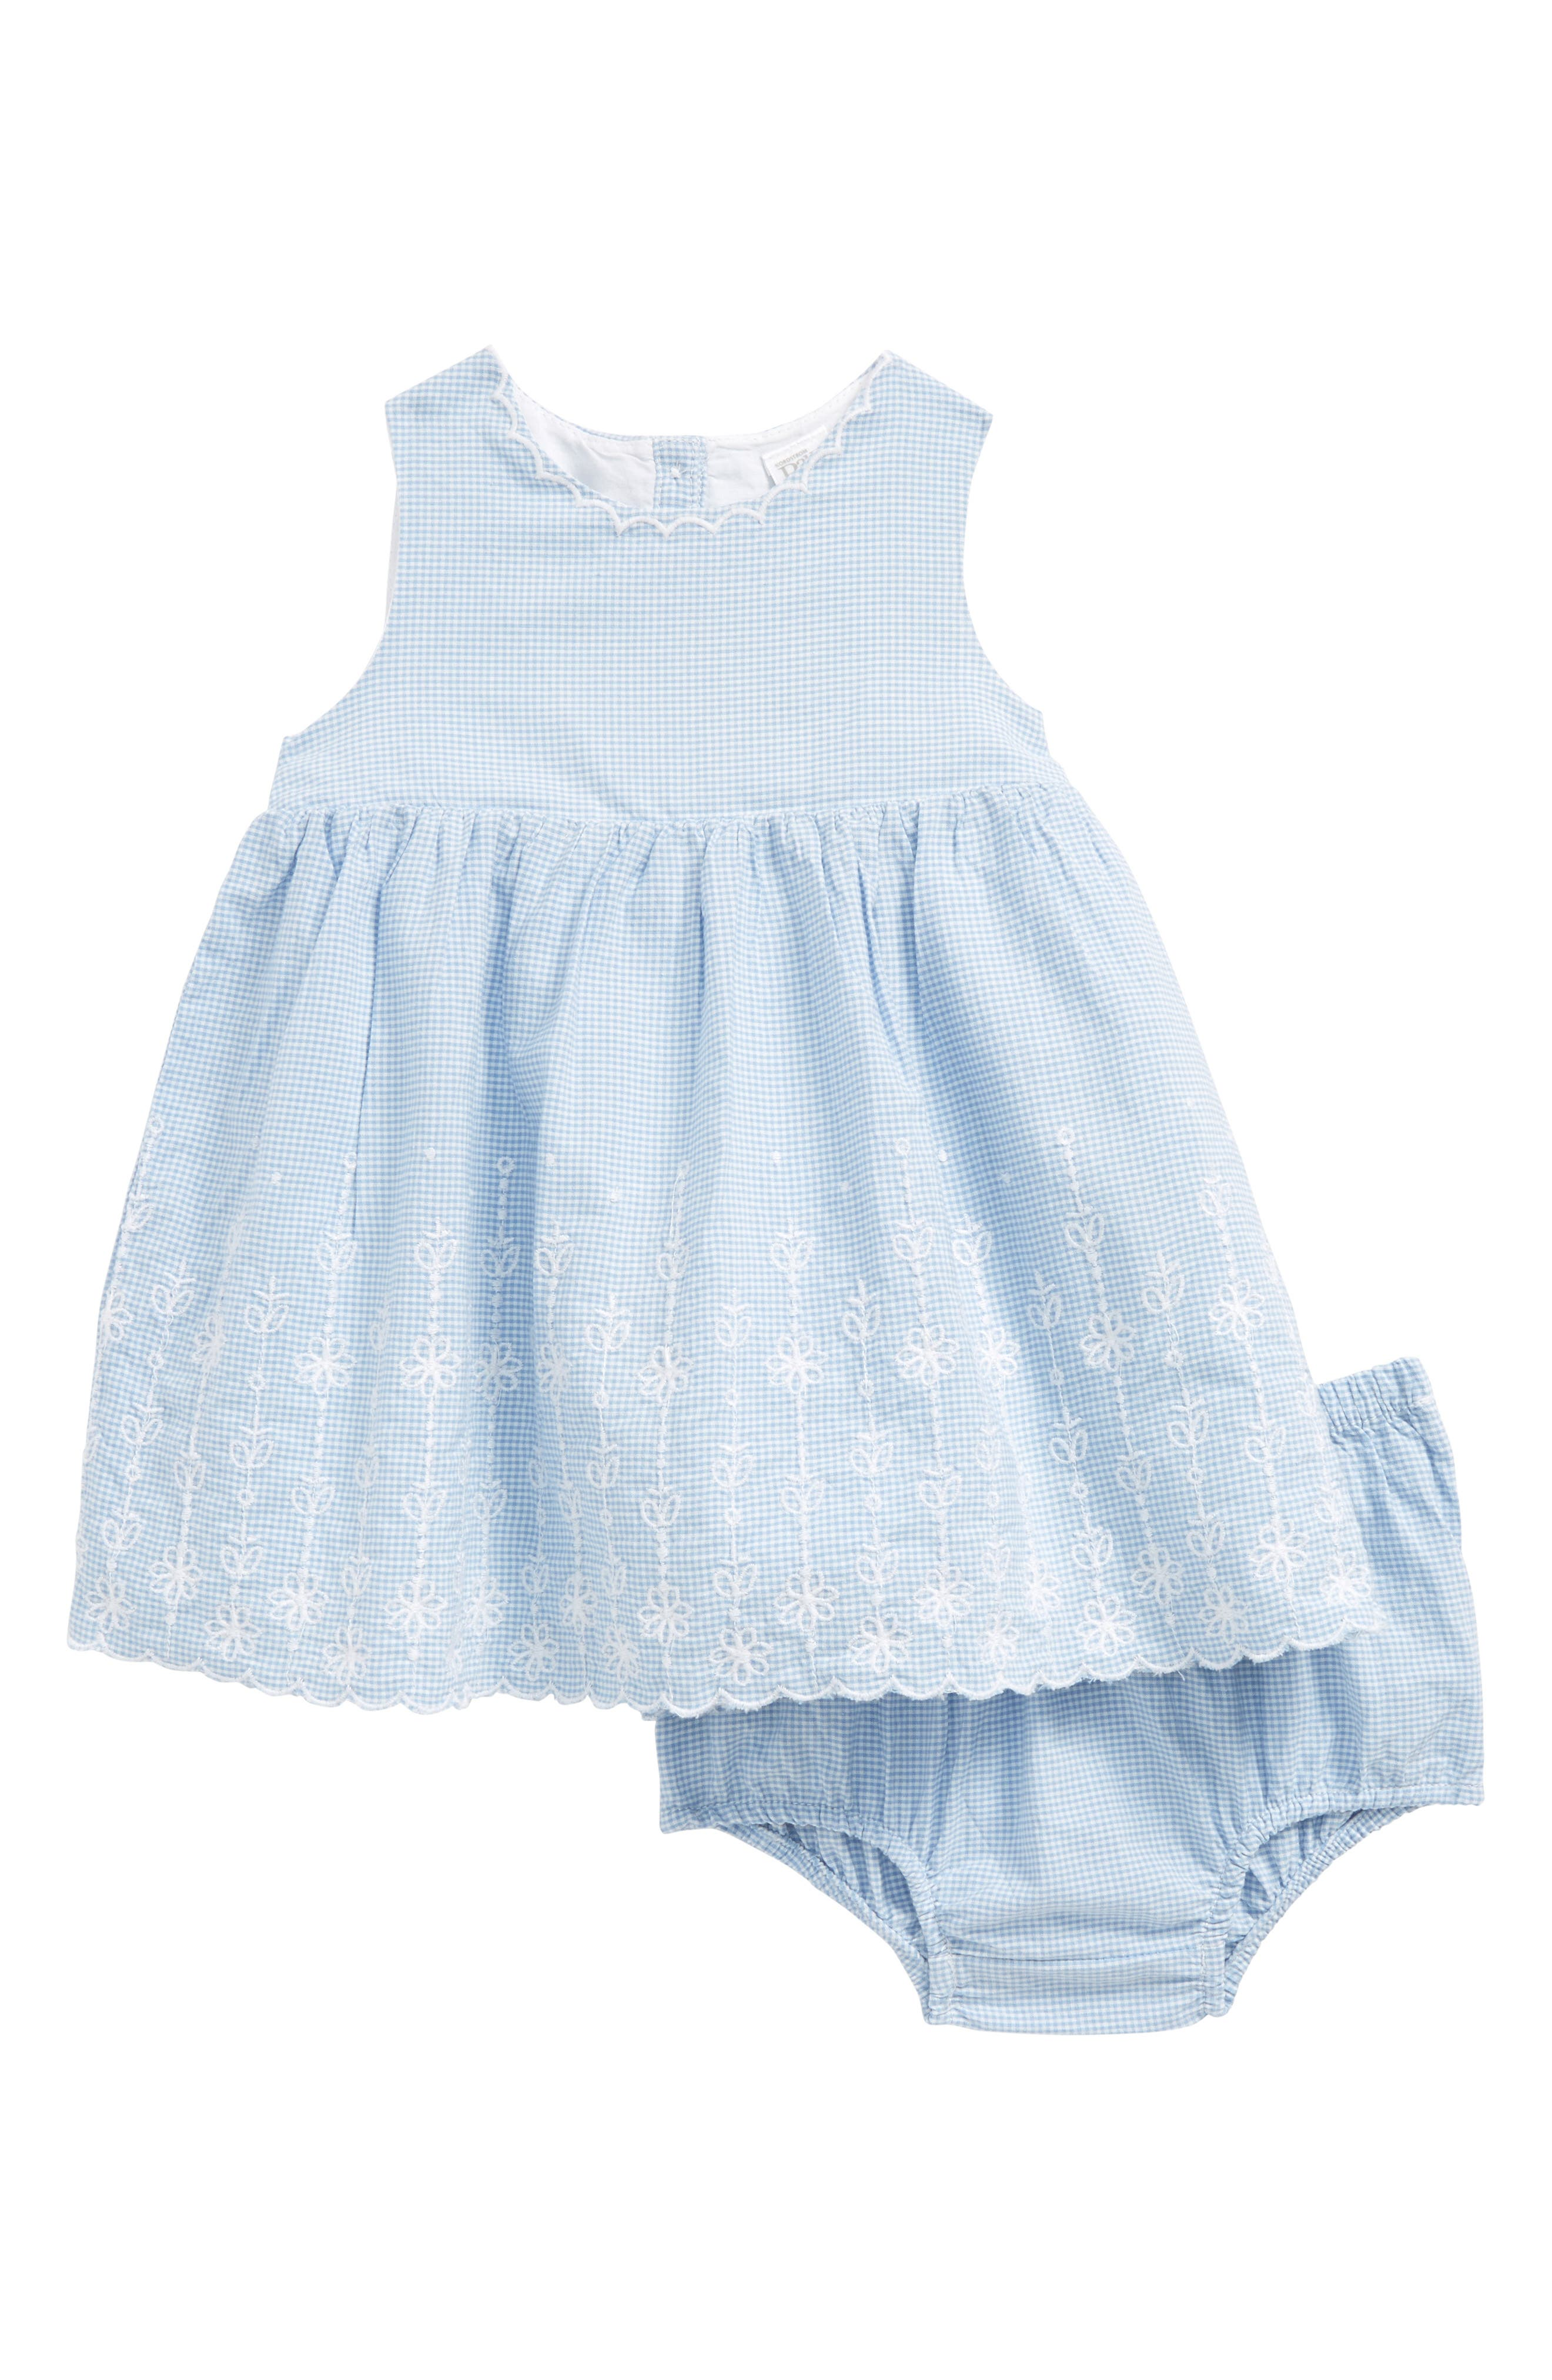 Nordstrom Baby Embroidered Mini Check Dress (Baby Girls)